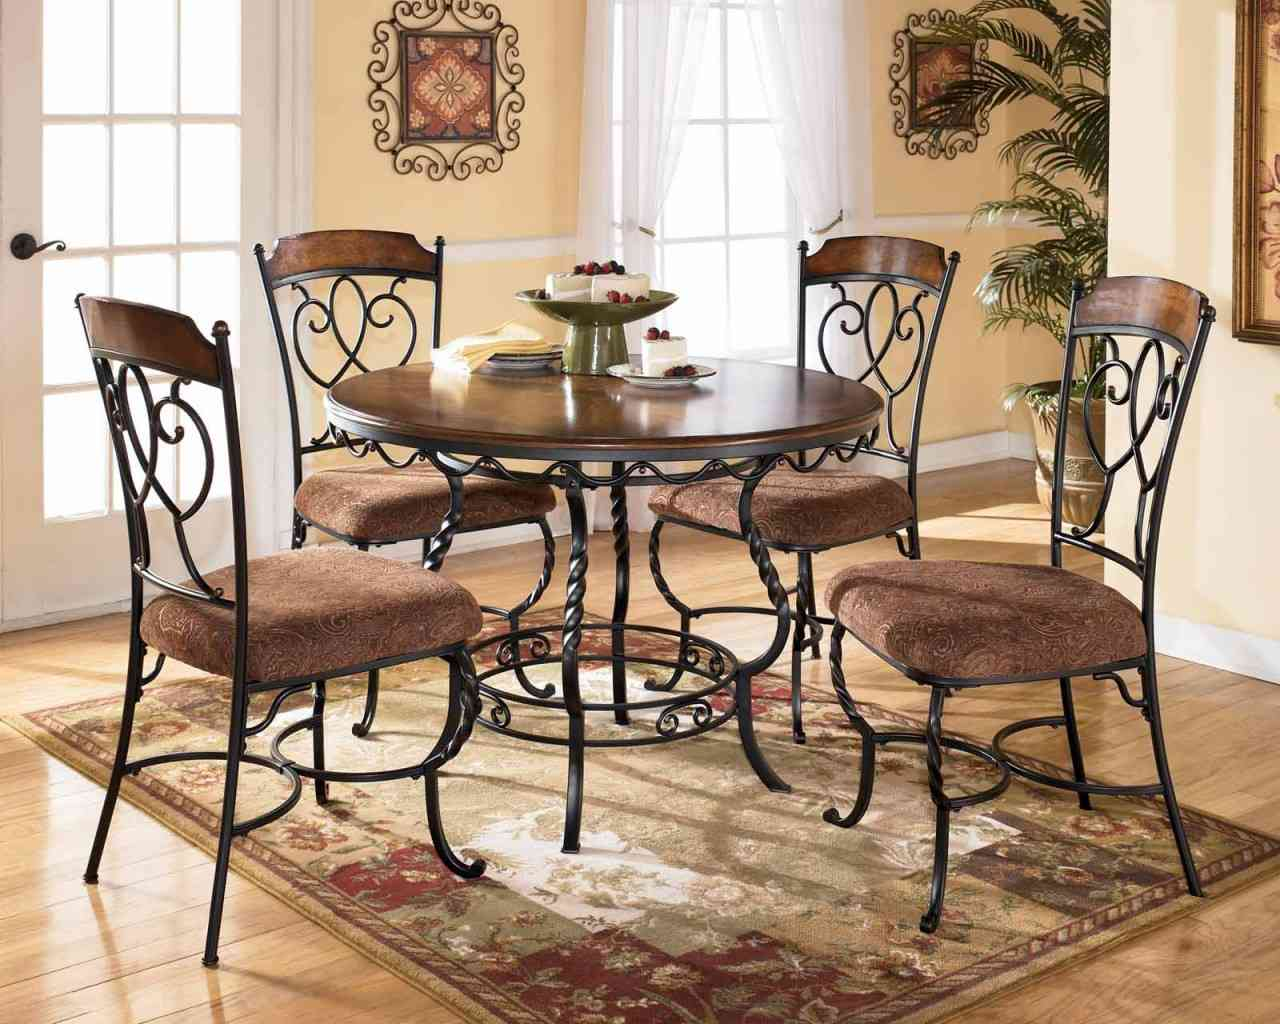 Wondrous round dining table and dining chairs dinette depot plus rugs